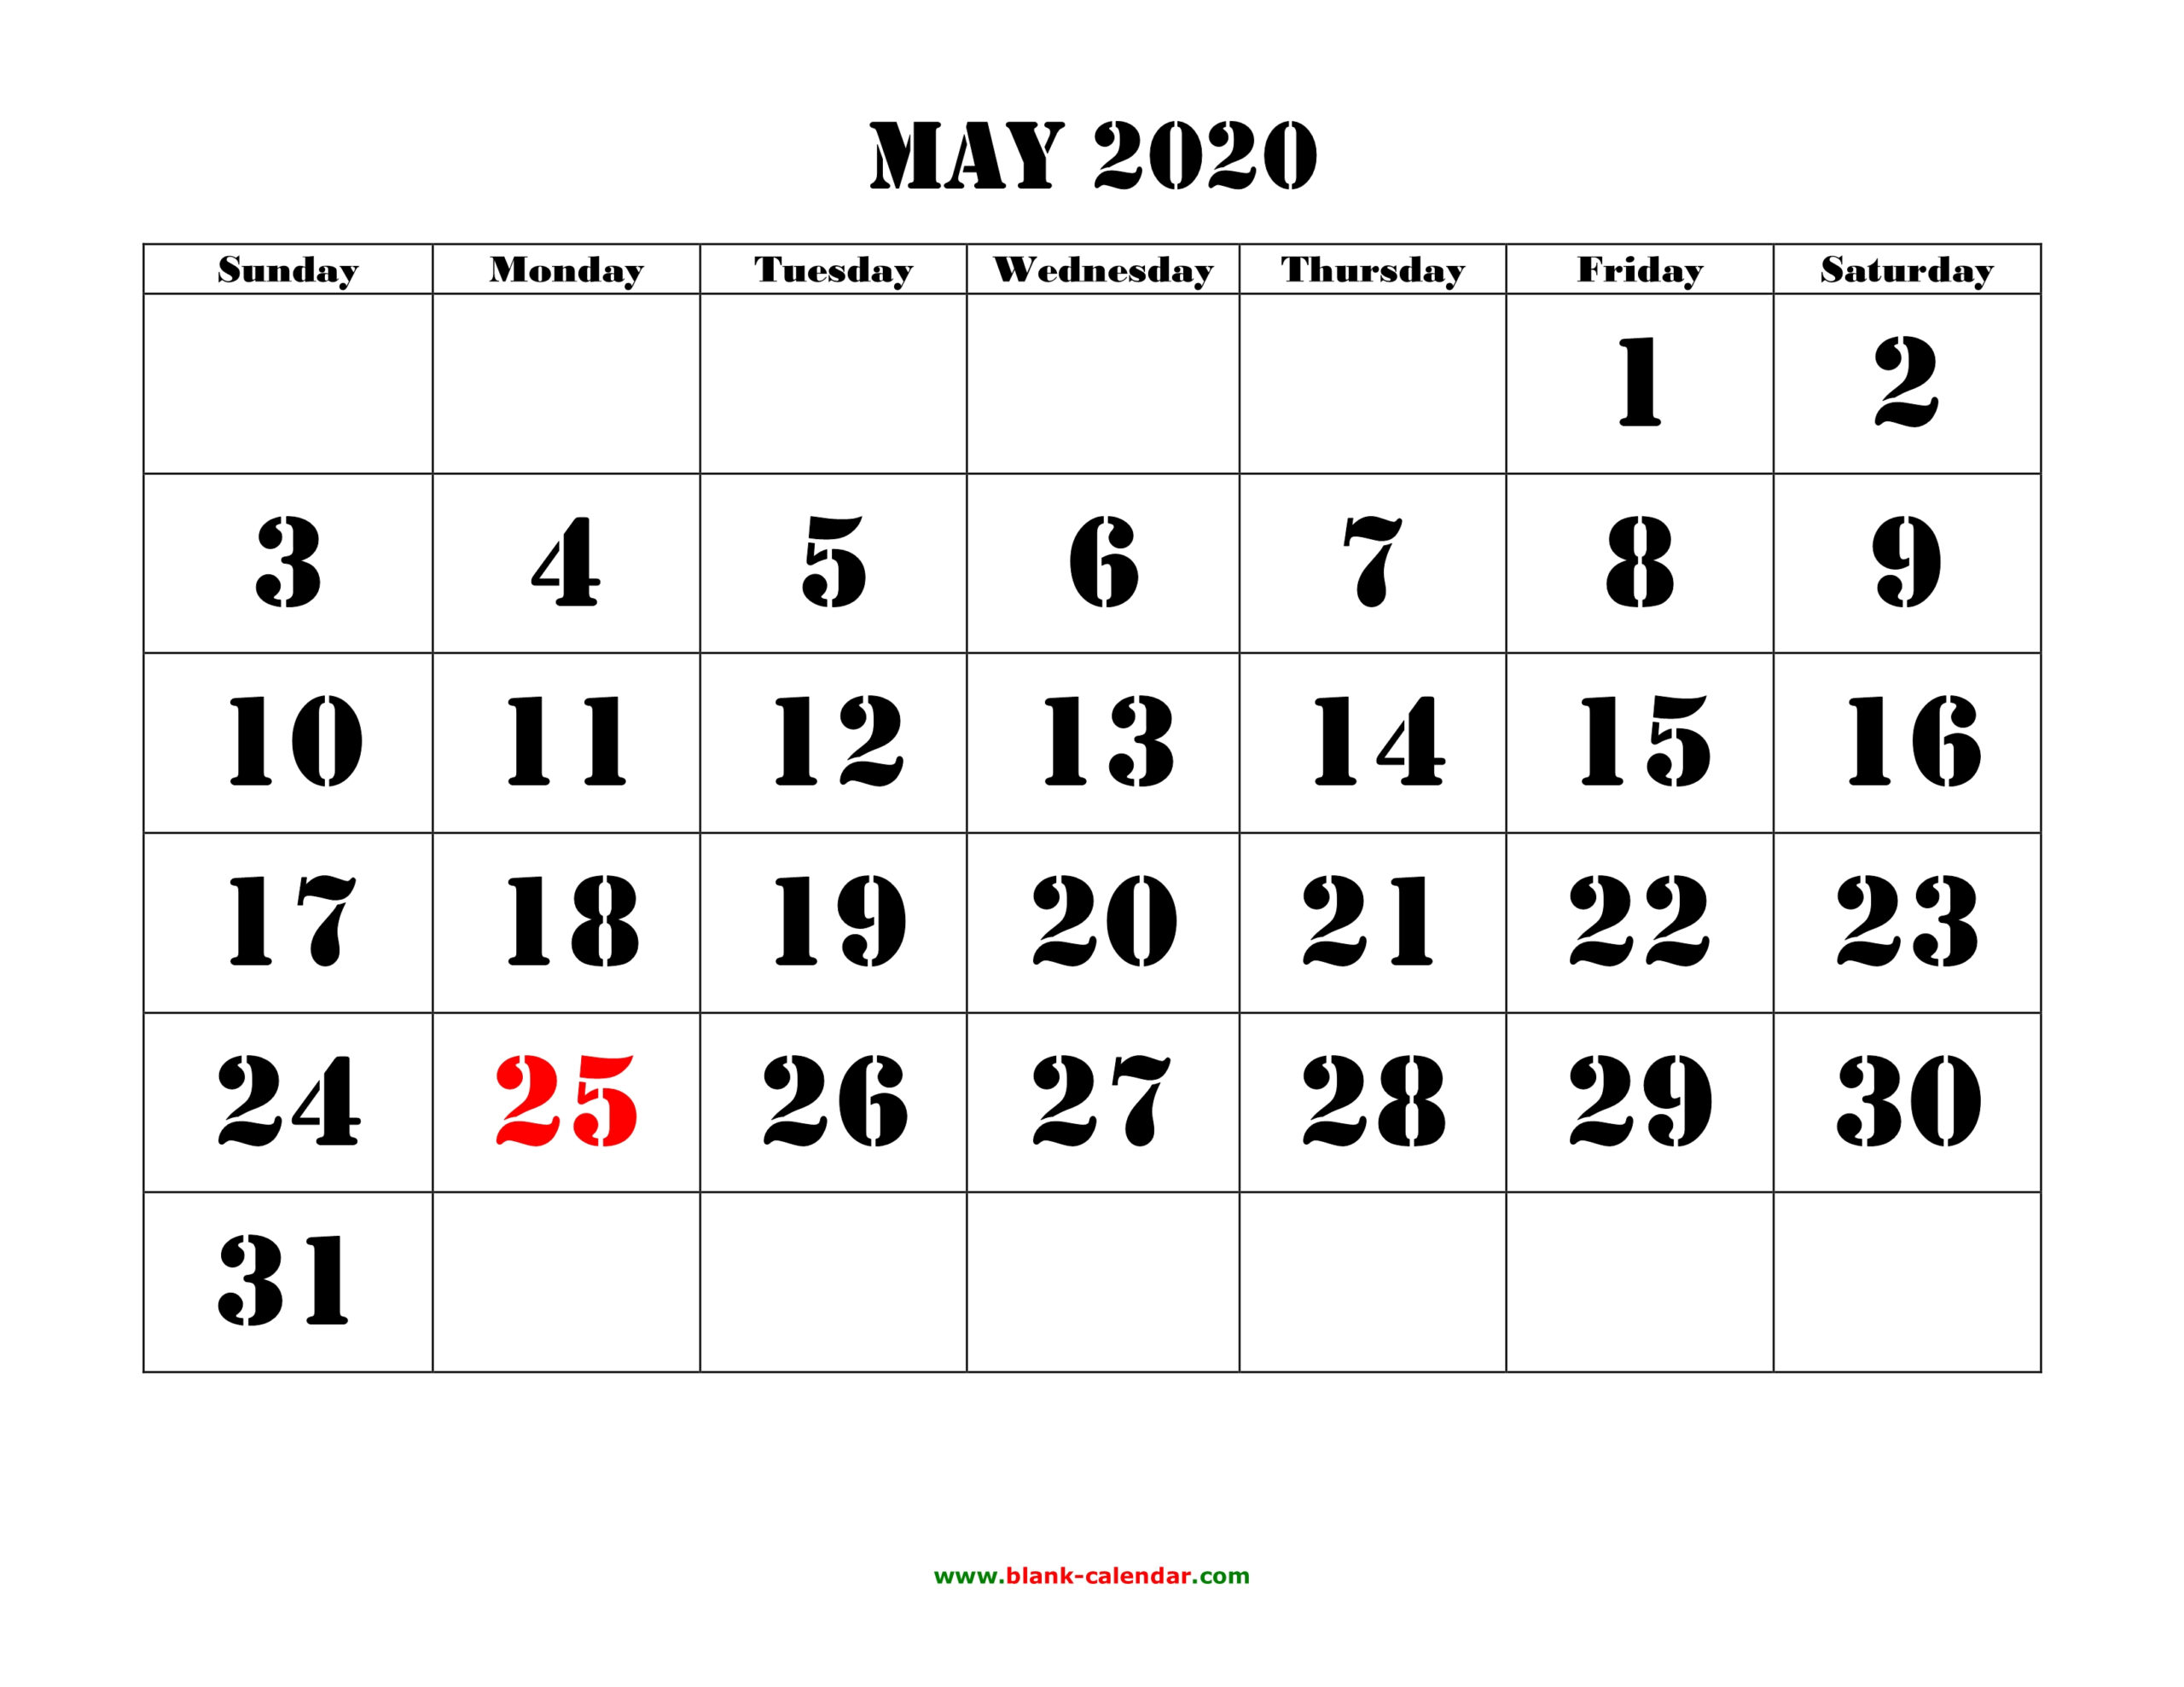 Free Download Printable May 2020 Calendar, Large Font Design with Large Bold Printable Calendar